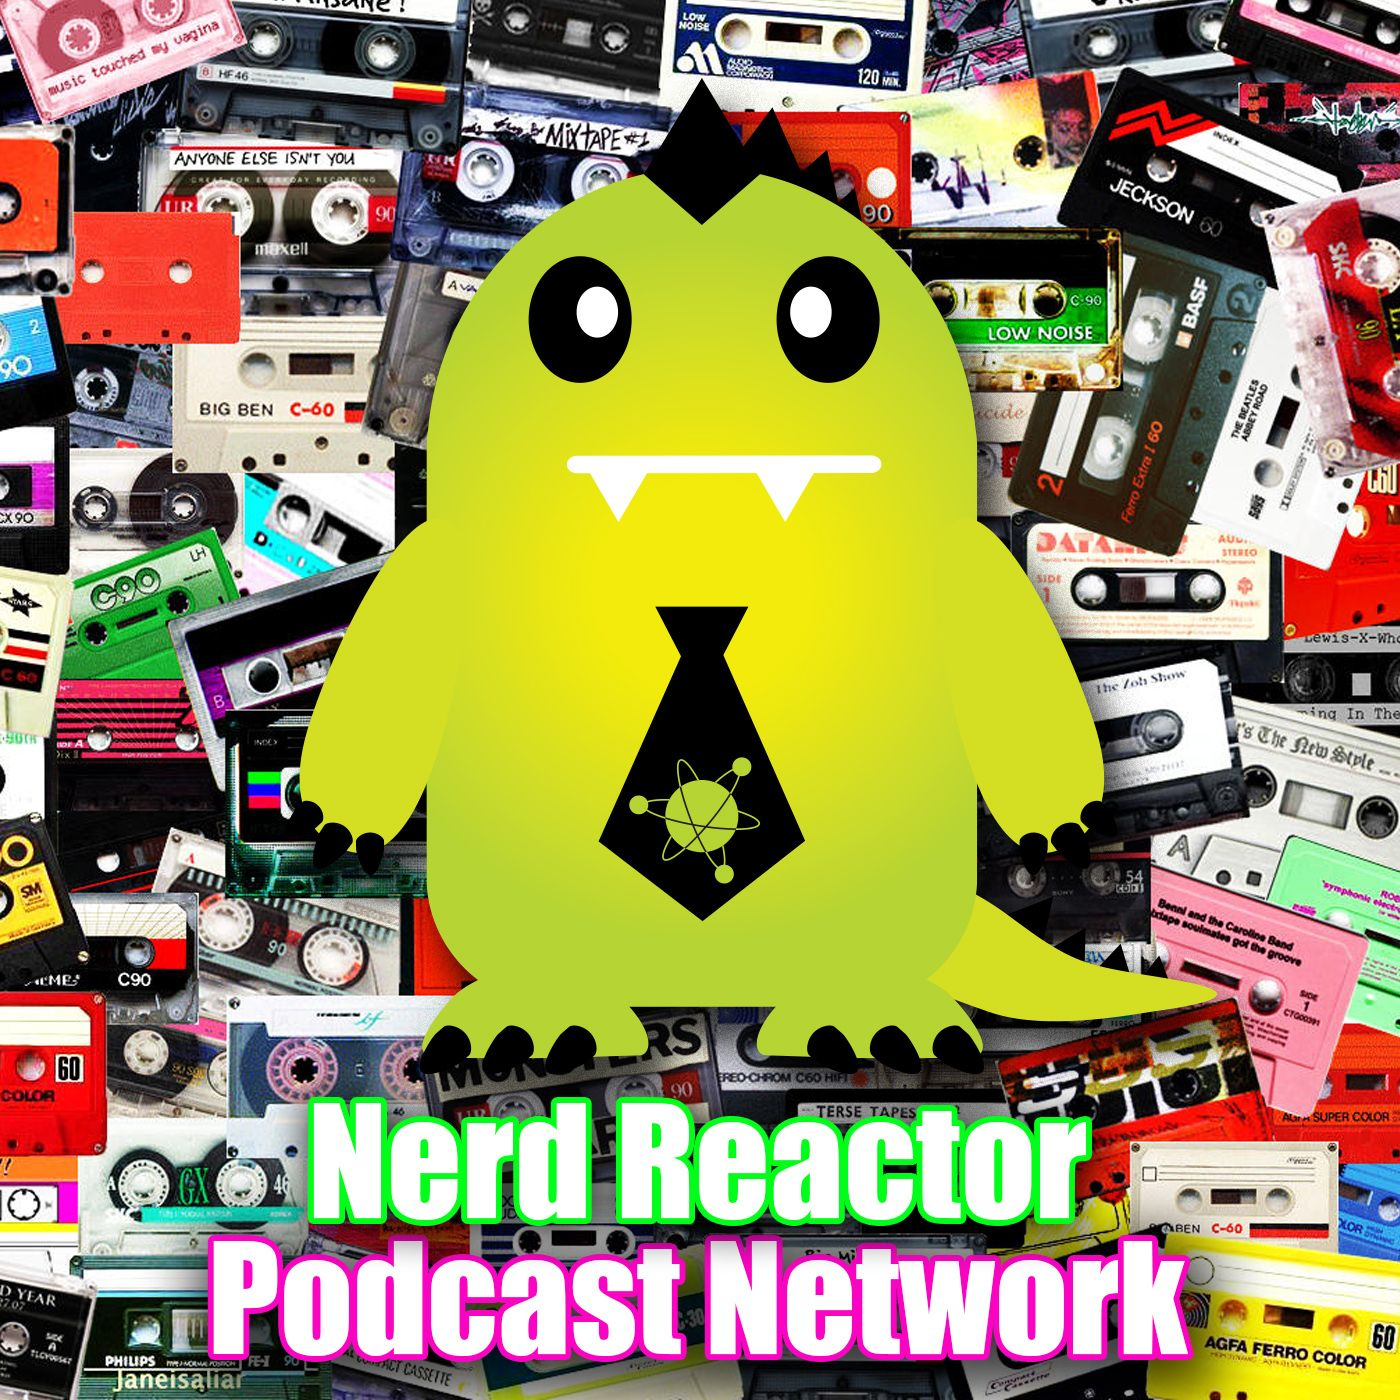 Nerd Reactor Podcast Network